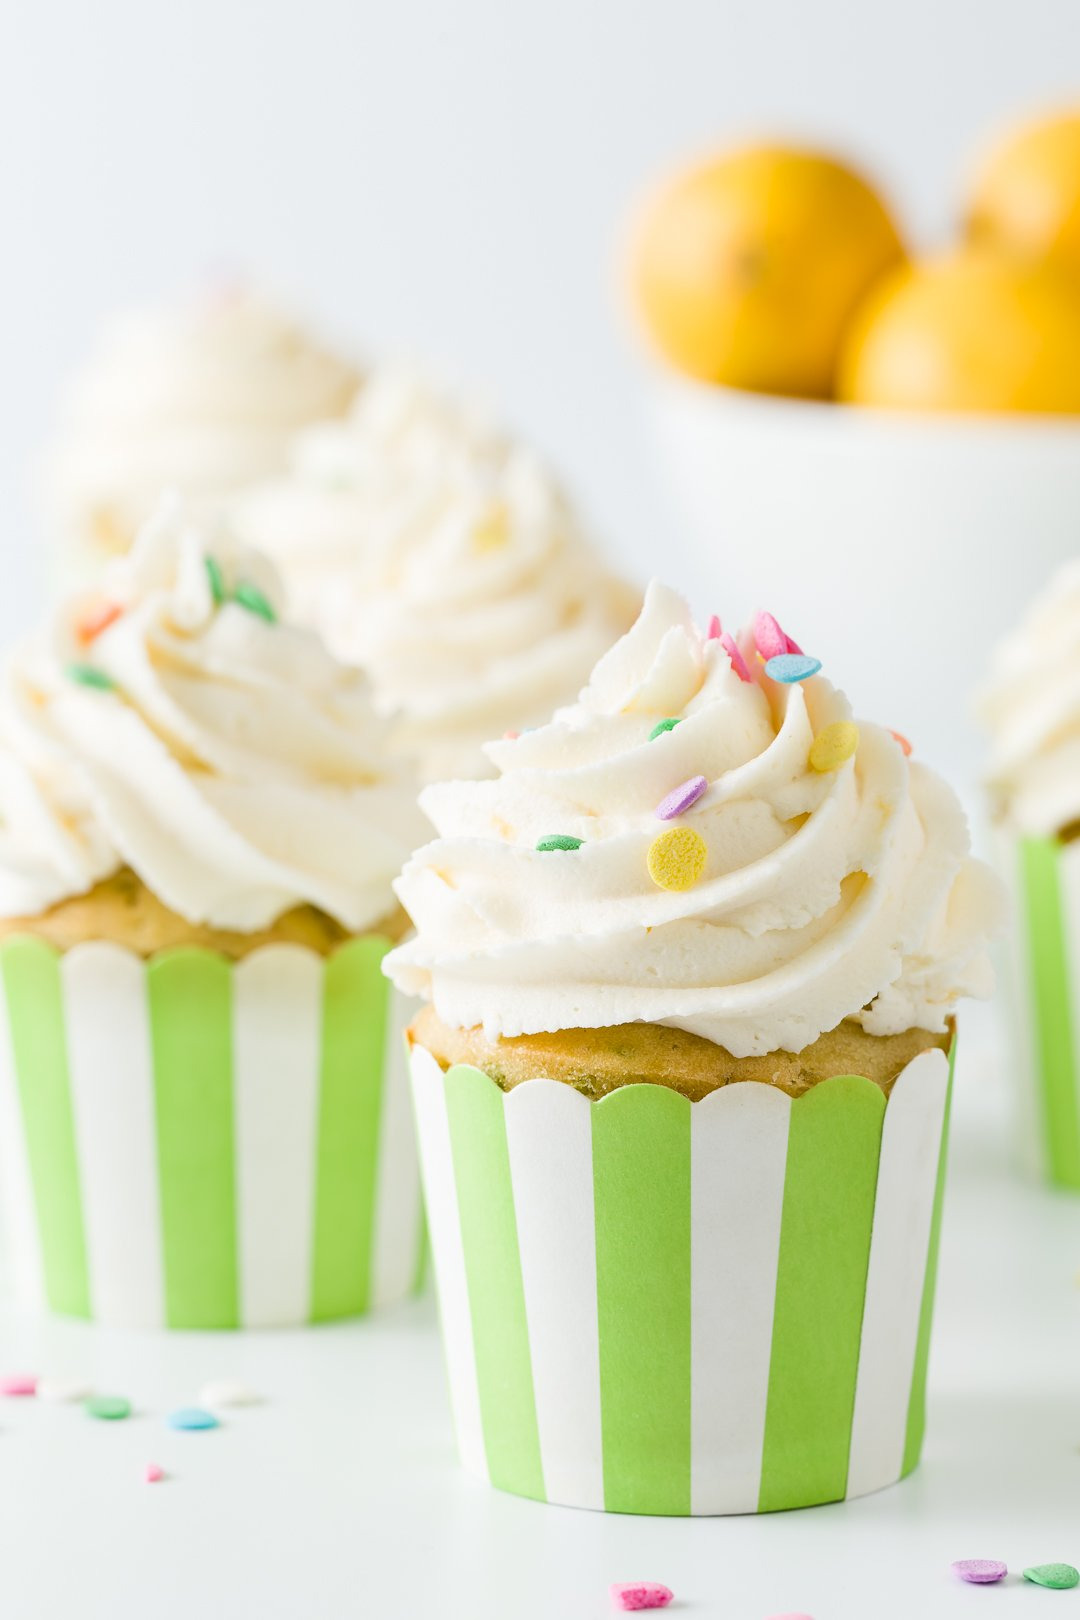 Cupcakes with sprinkles in green striped wrappers